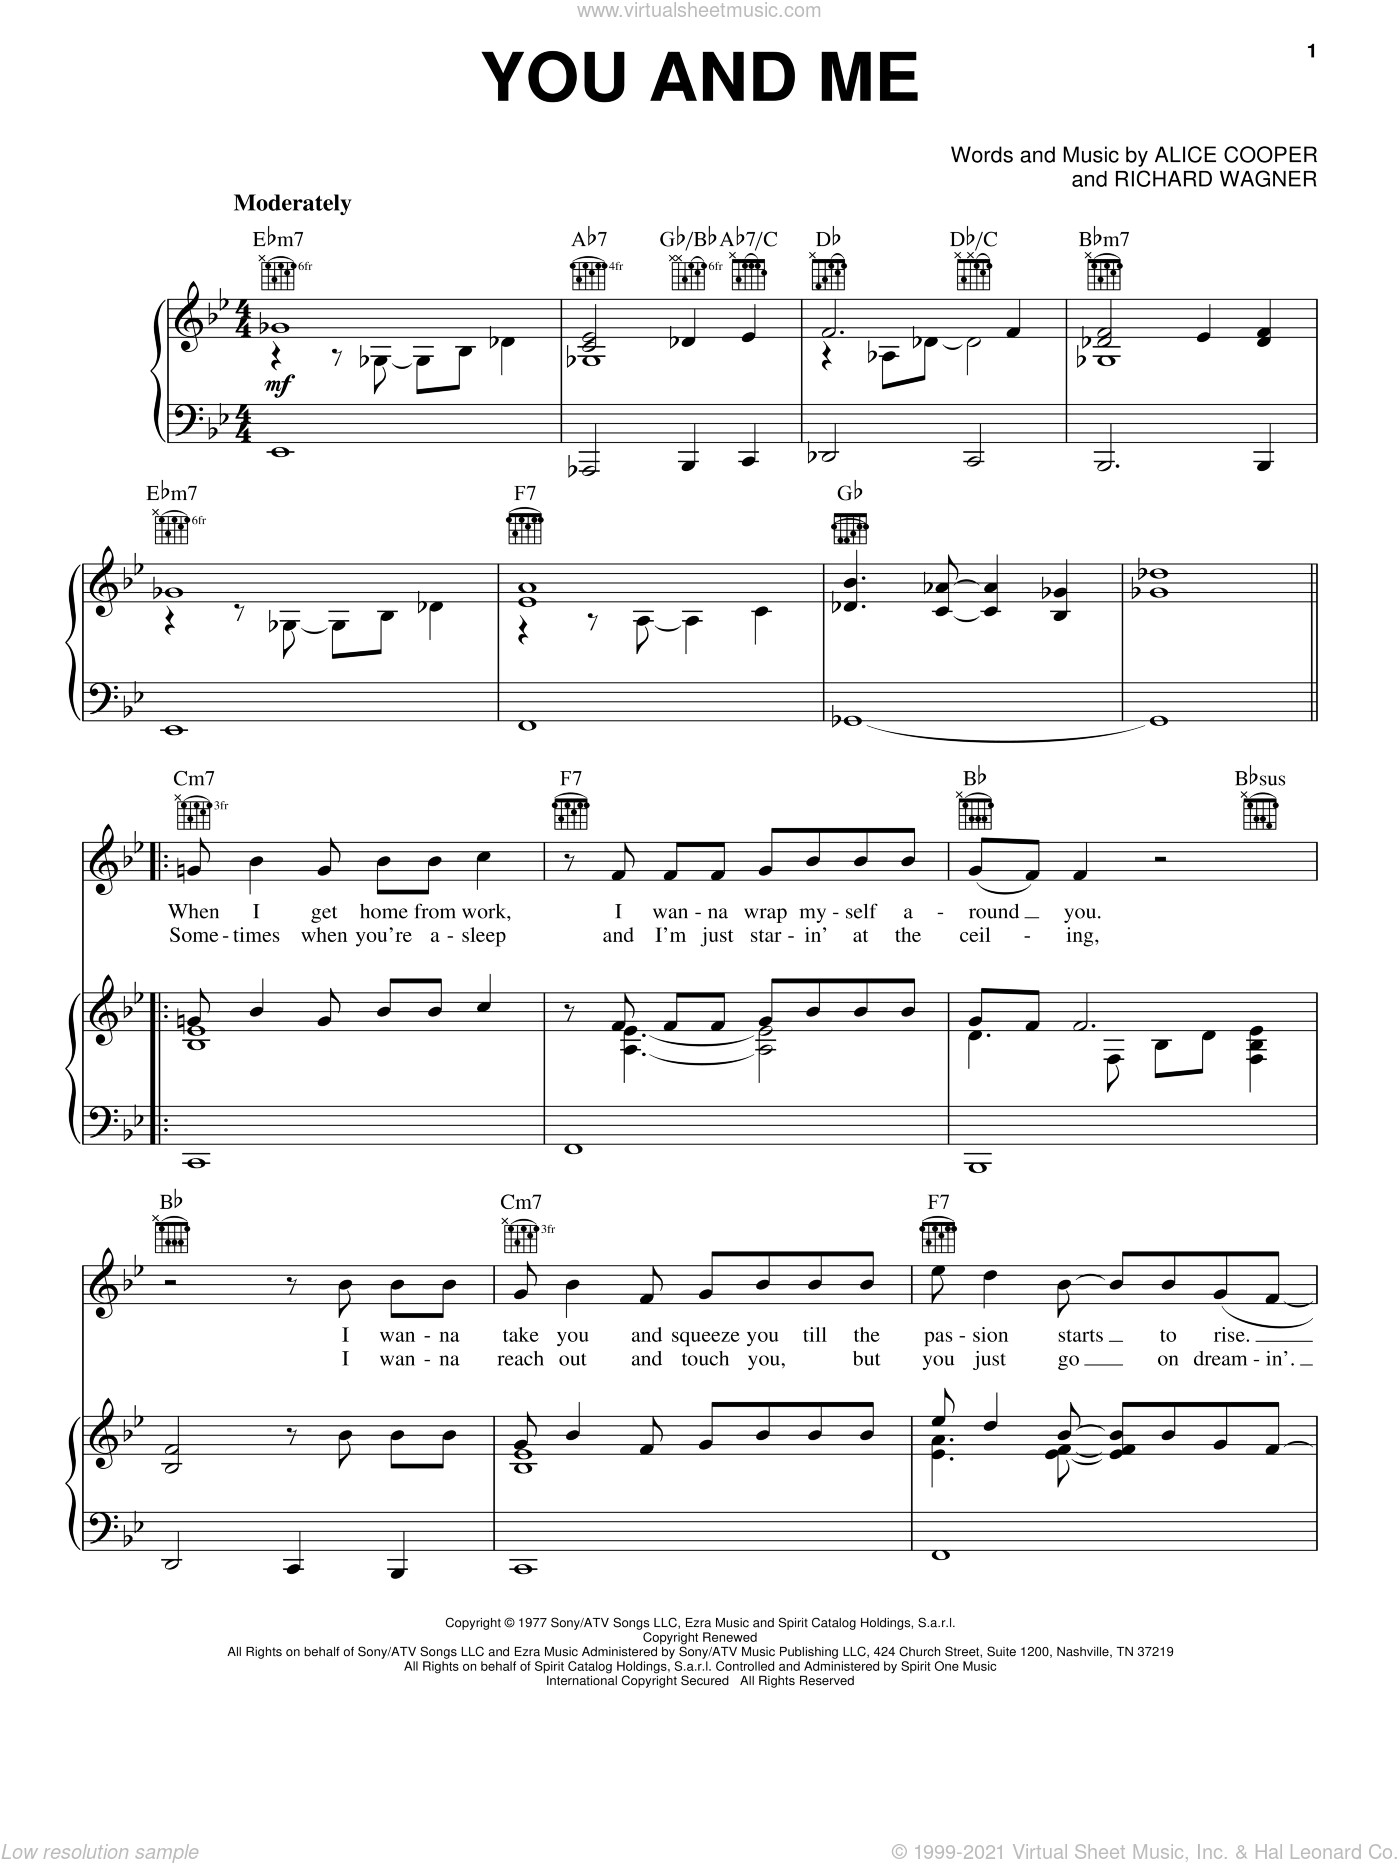 You And Me sheet music for voice, piano or guitar by Alice Cooper and Richard Wagner. Score Image Preview.